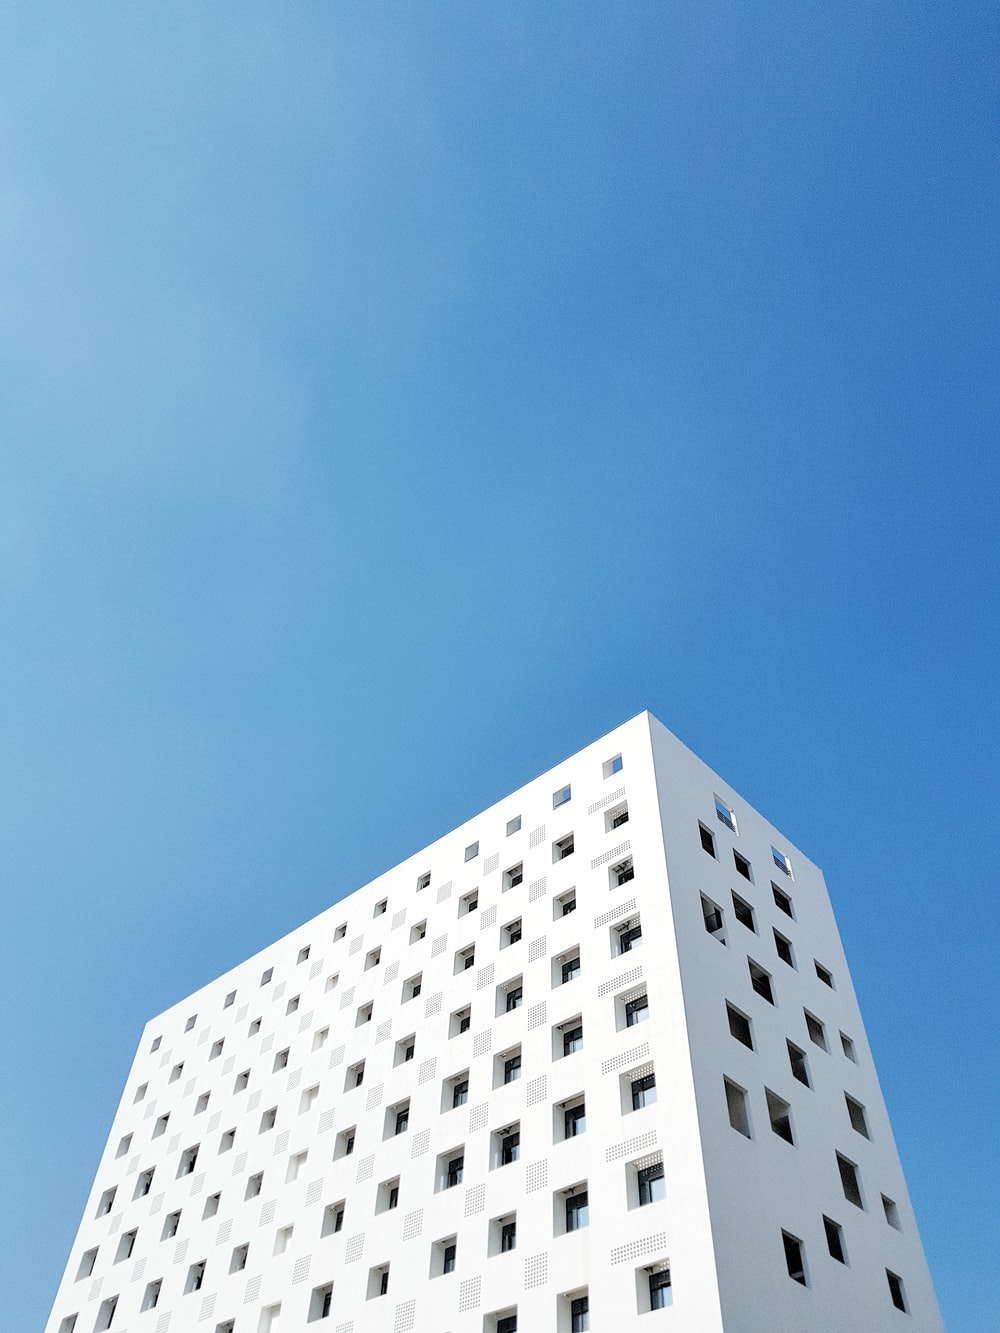 white painted building under blue sky